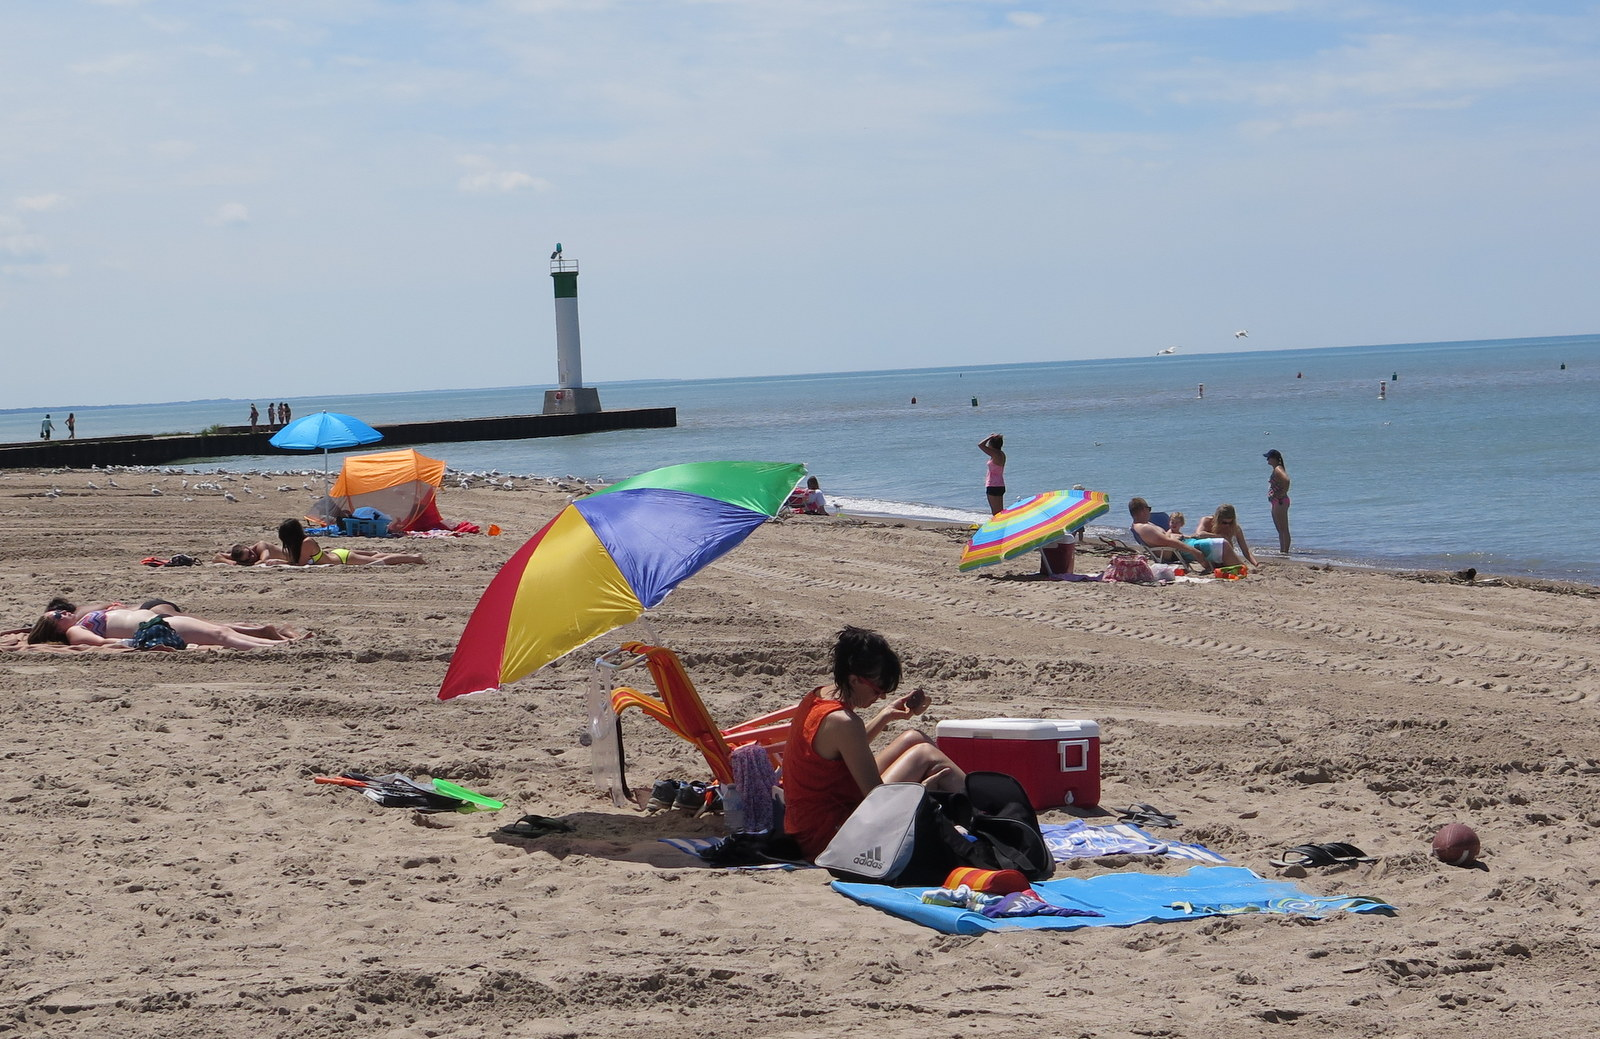 The beach at Grand Bend is excellent. The town might be even better; with a great surf town vibe and fun places to shop and eat. JIM BYERS PHOTO